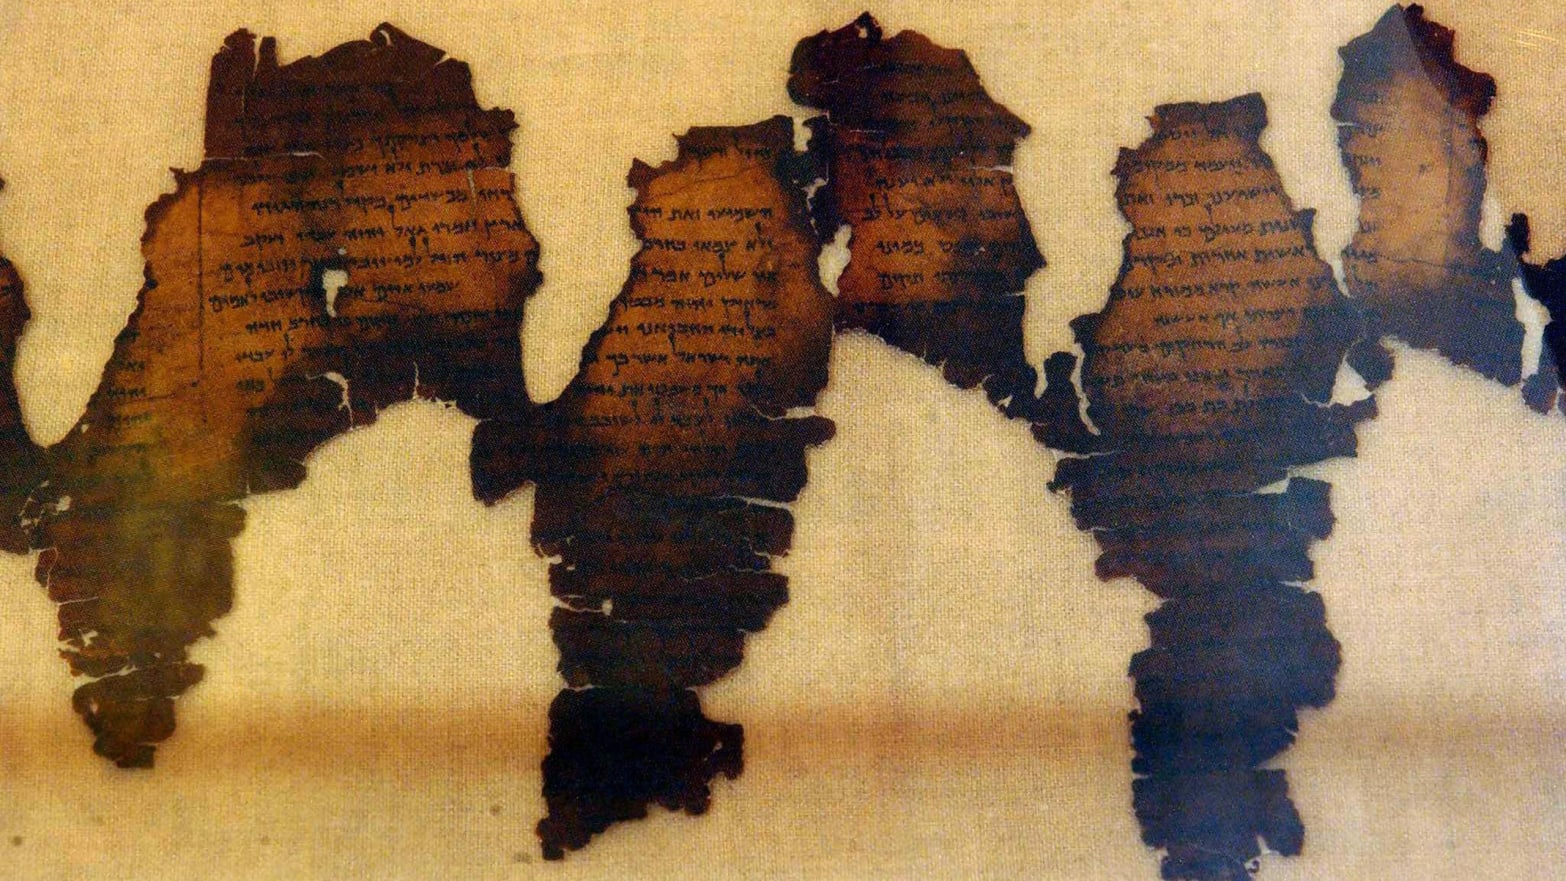 Bible Museum's Dead Sea Scrolls Turn Out to Be Forgeries